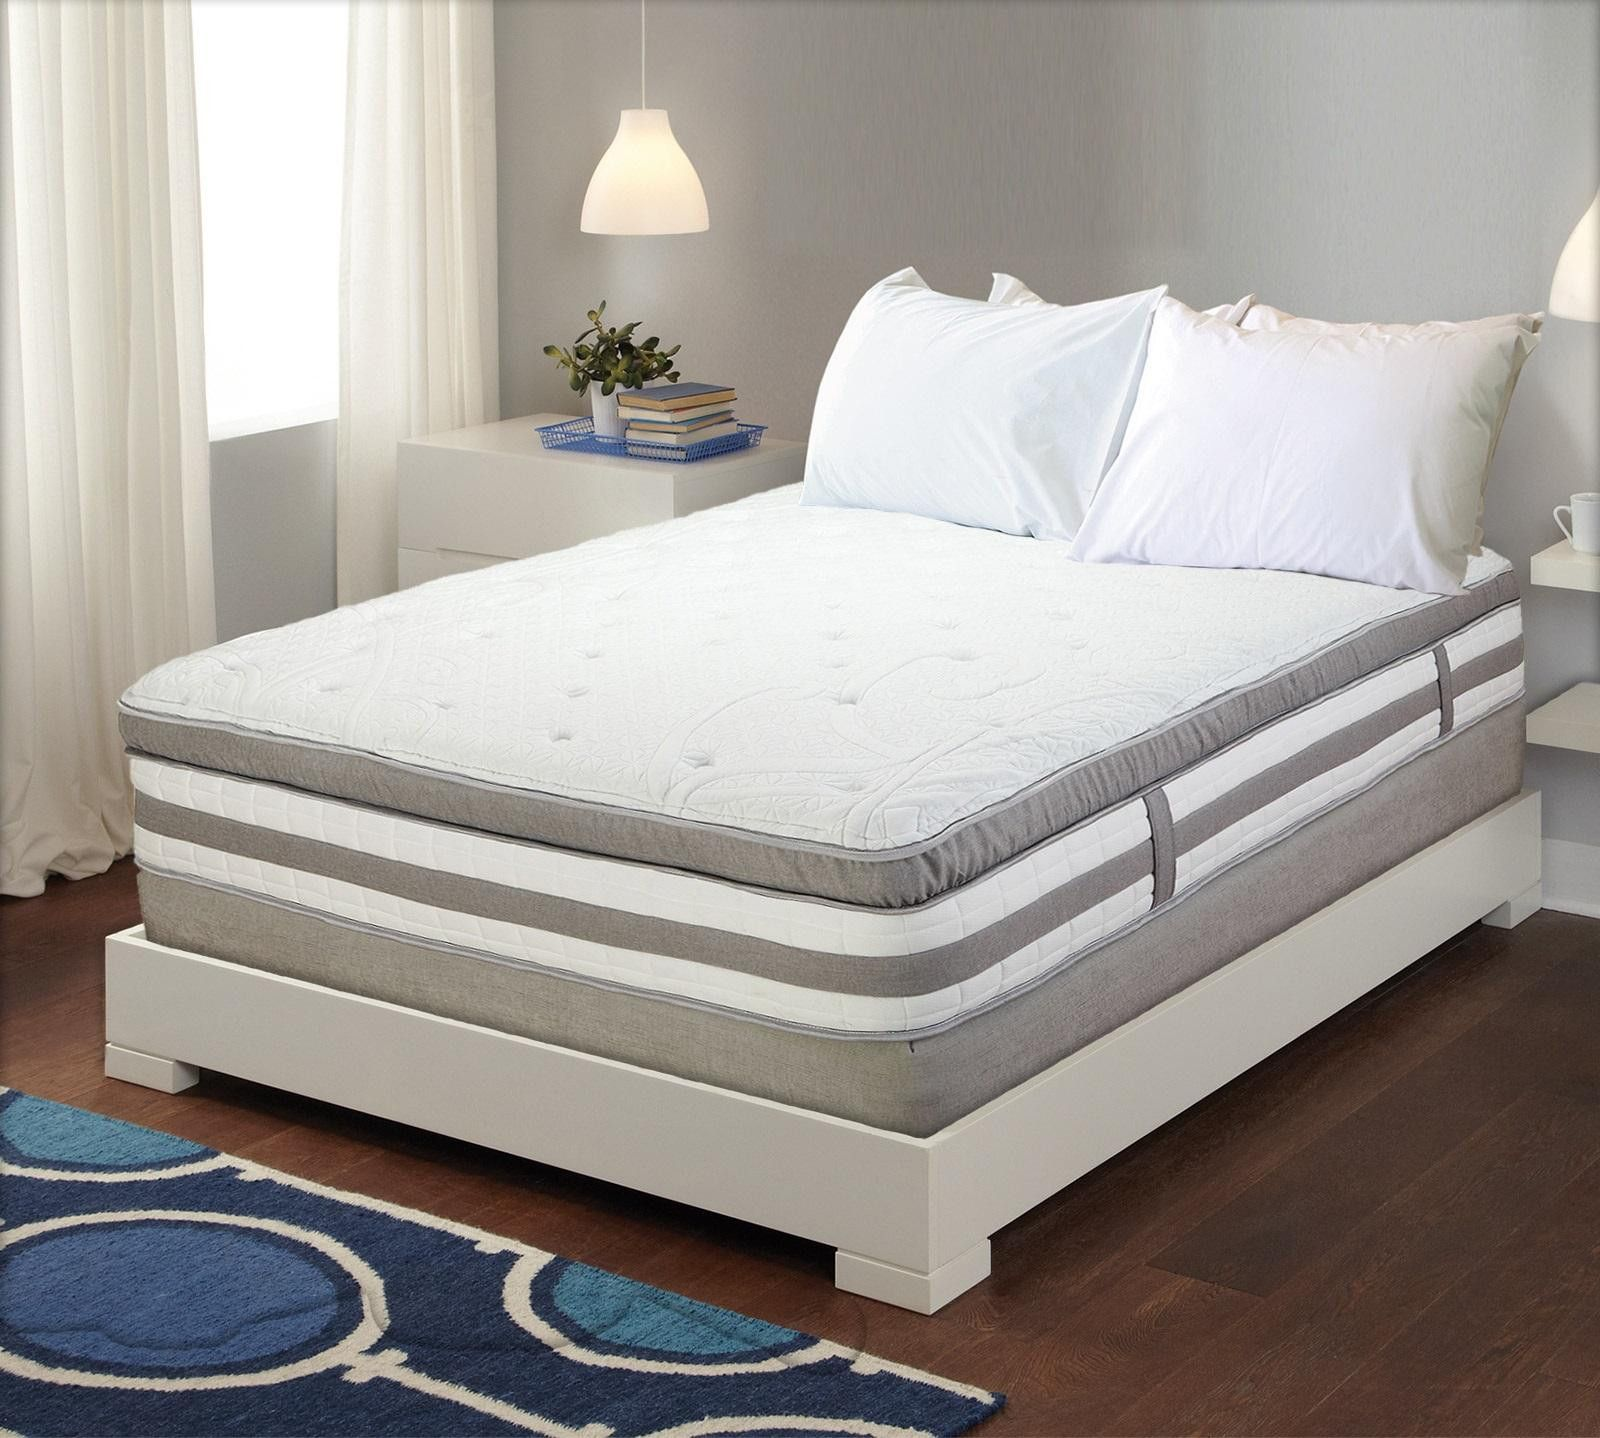 30 Breathtaking Mattress Firm Queen Bed Frame Ideas Lovely